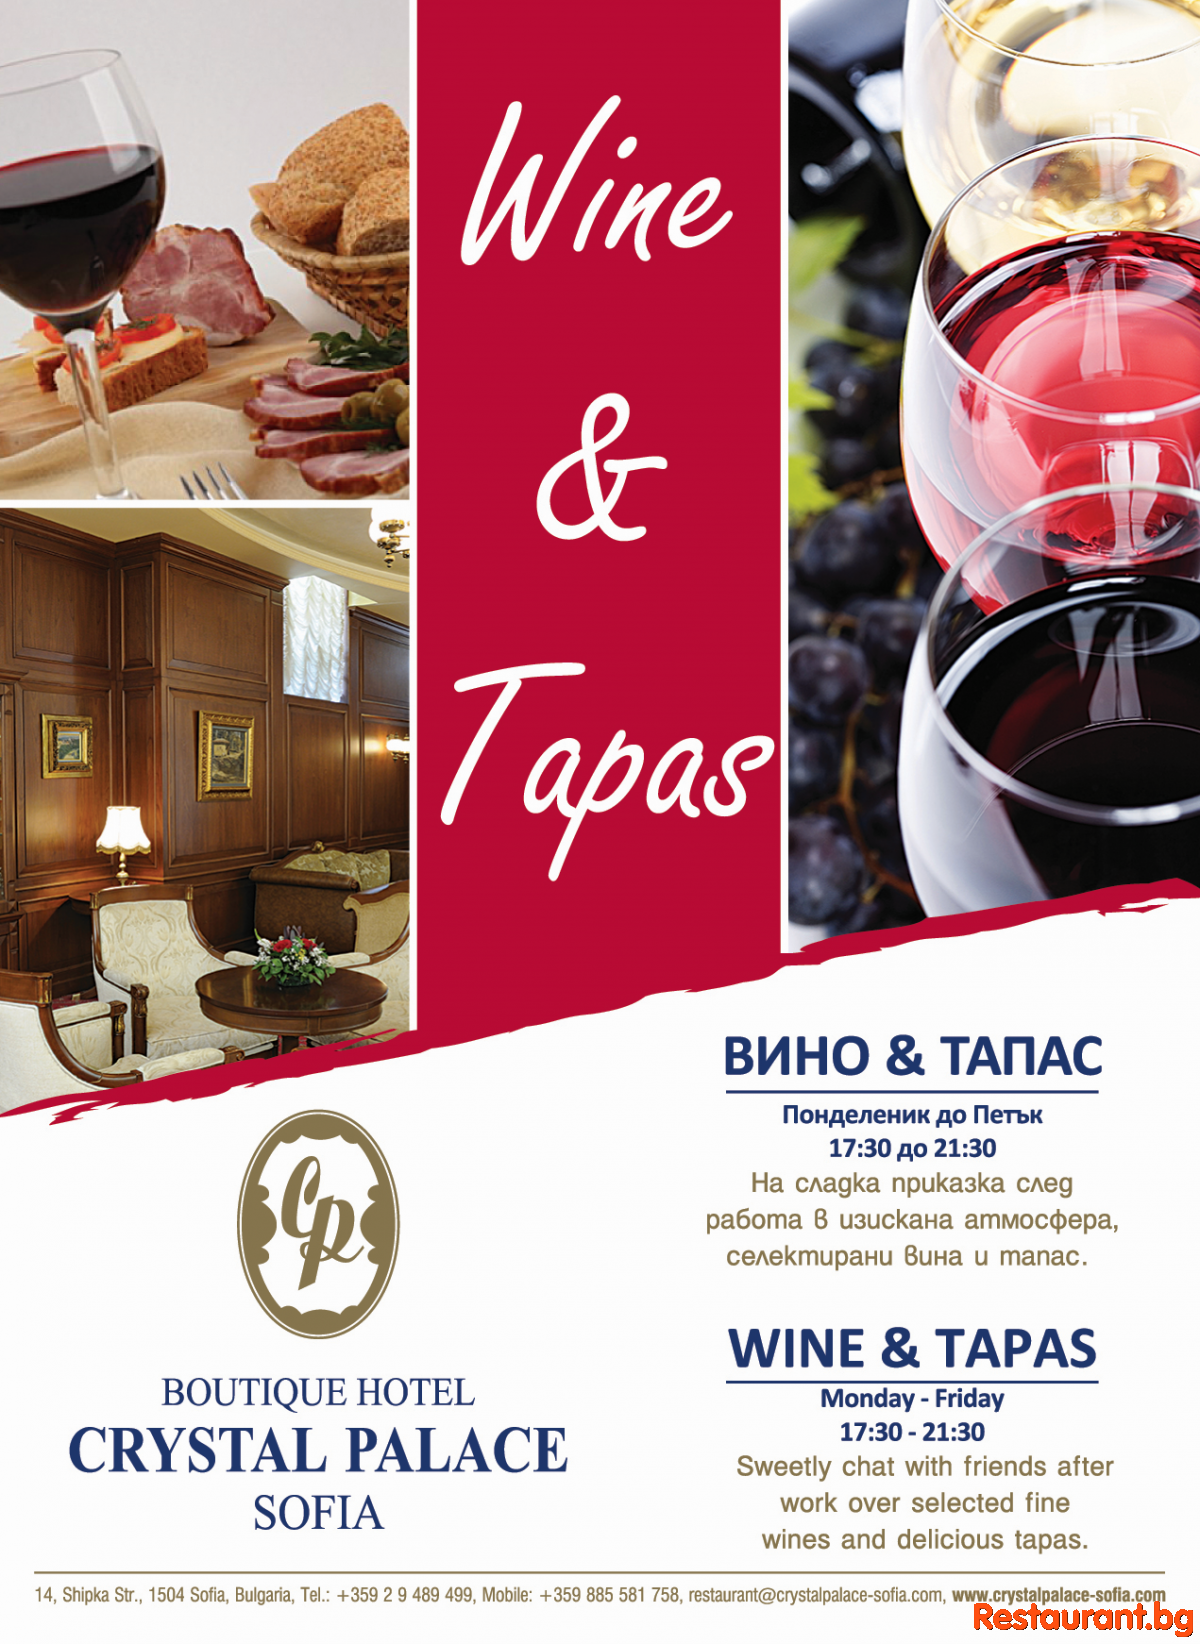 Wine and tapas at restaurant Crystal Palace Sofia